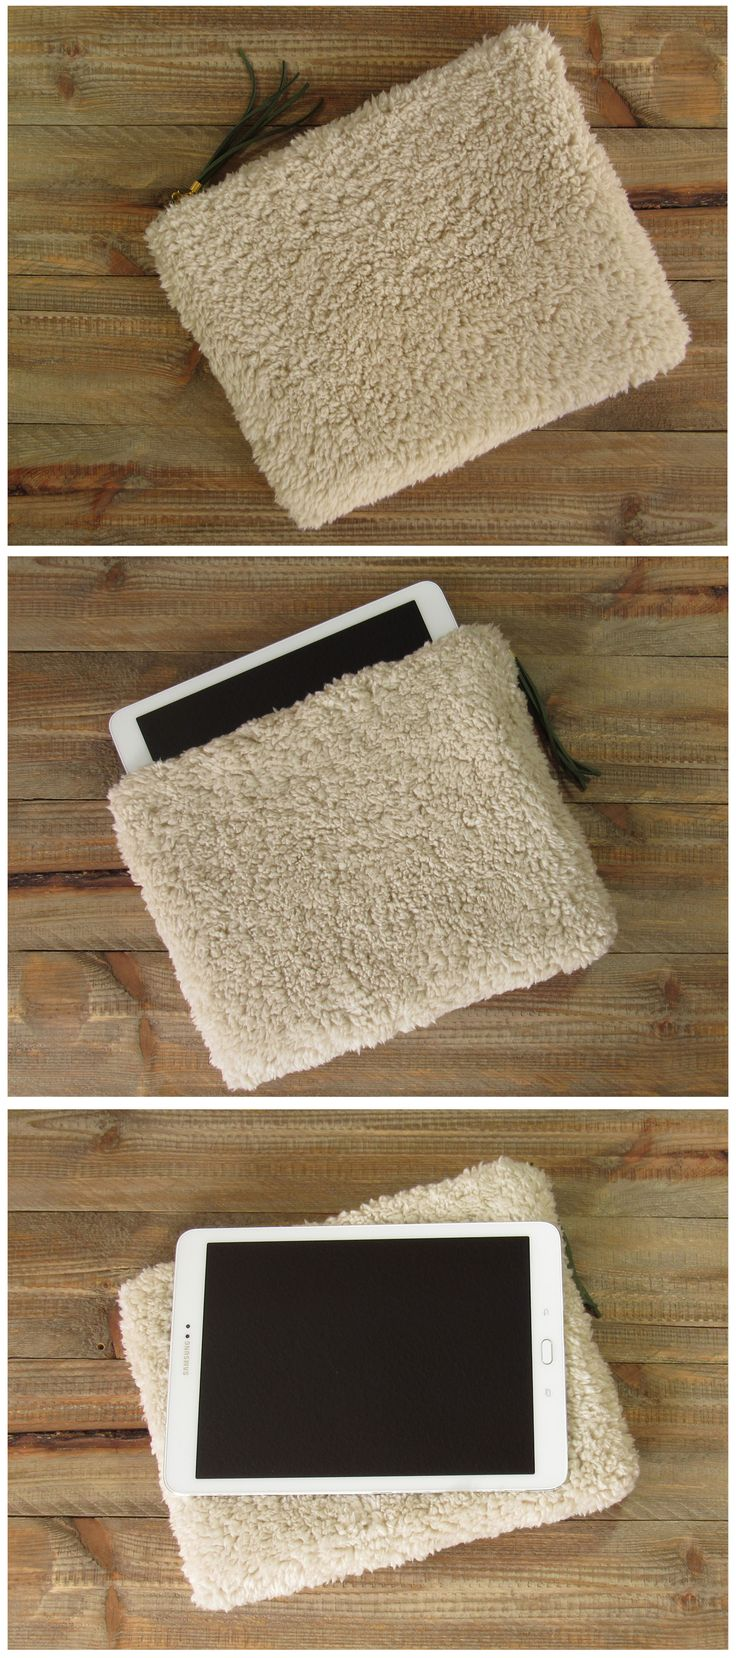 """case for tablet 9,7"""" made of fake fur with green suede tassel 9.7 inch tablet accessories case for ipad or e-reader gift idea"""